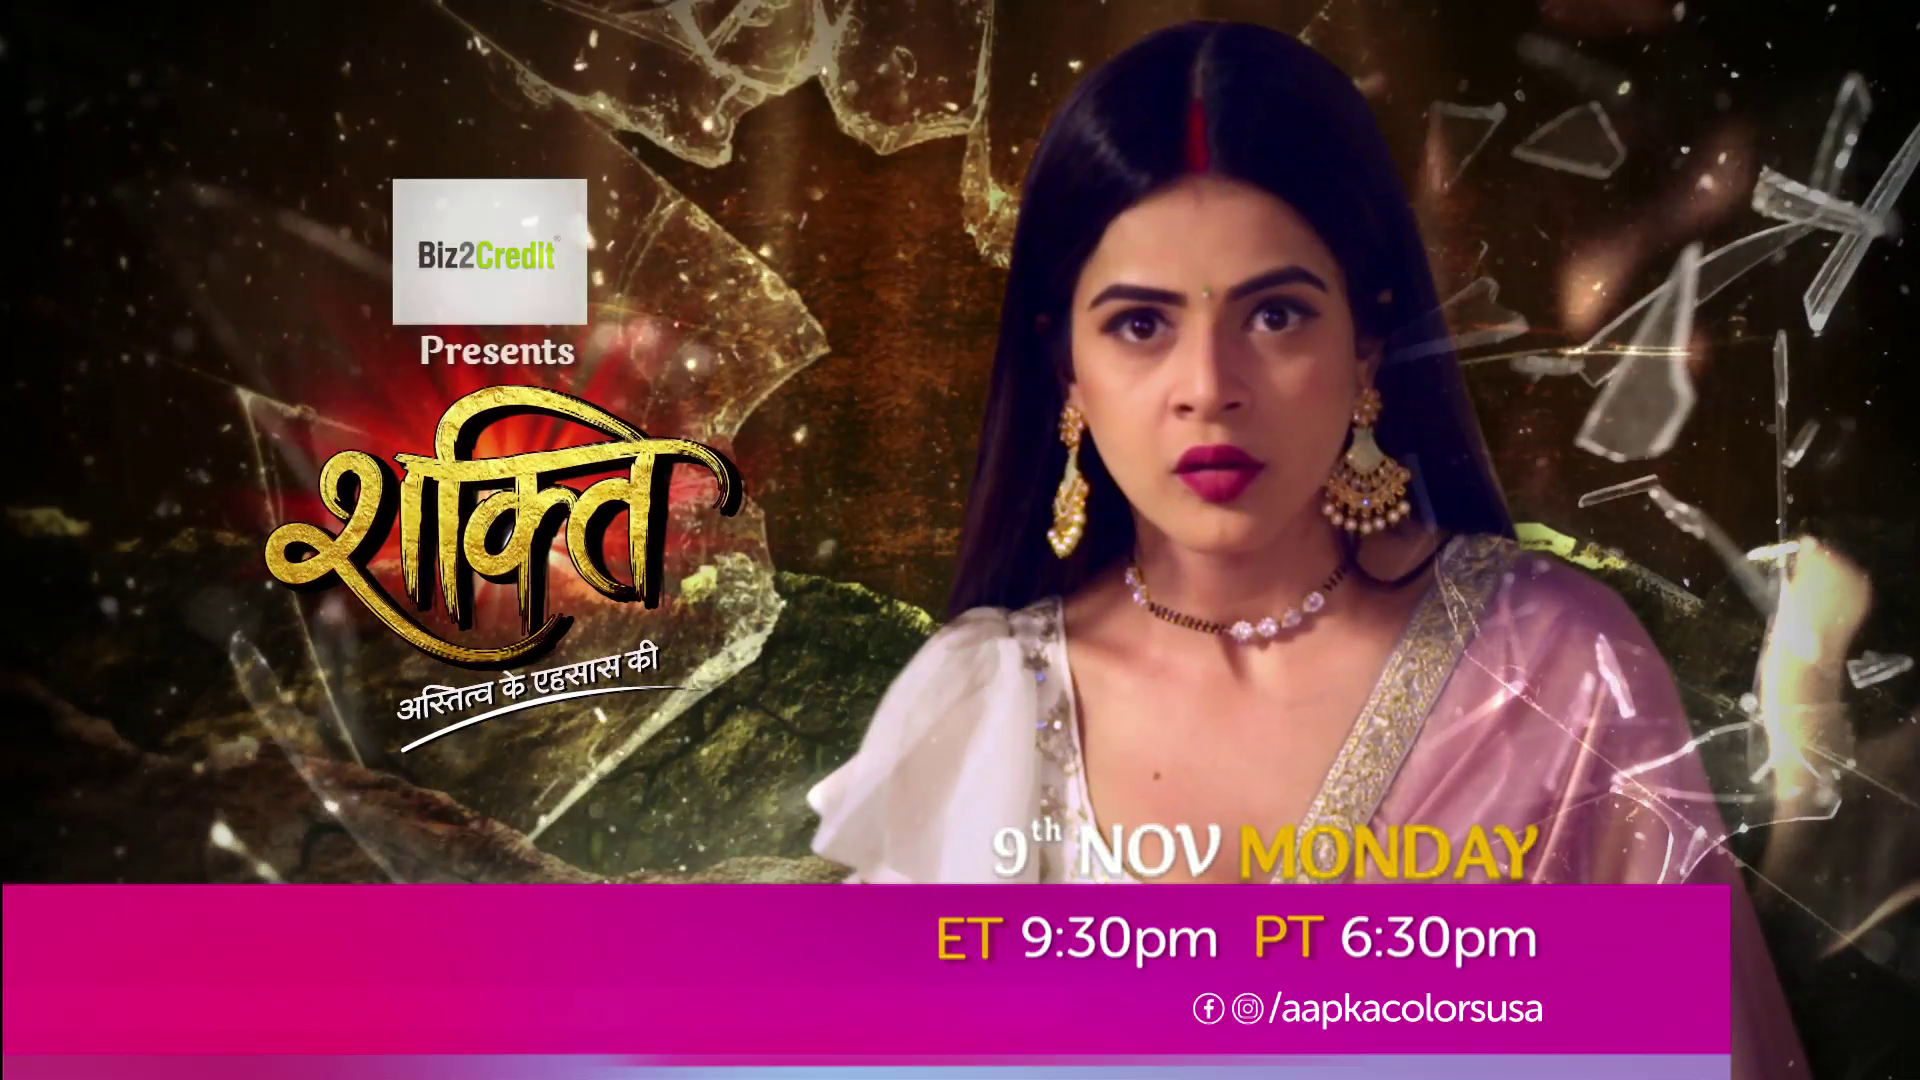 Watch Shakti Mon-Fri 9:30 PT ET 10:30 PM PT on Aapka Colors US!